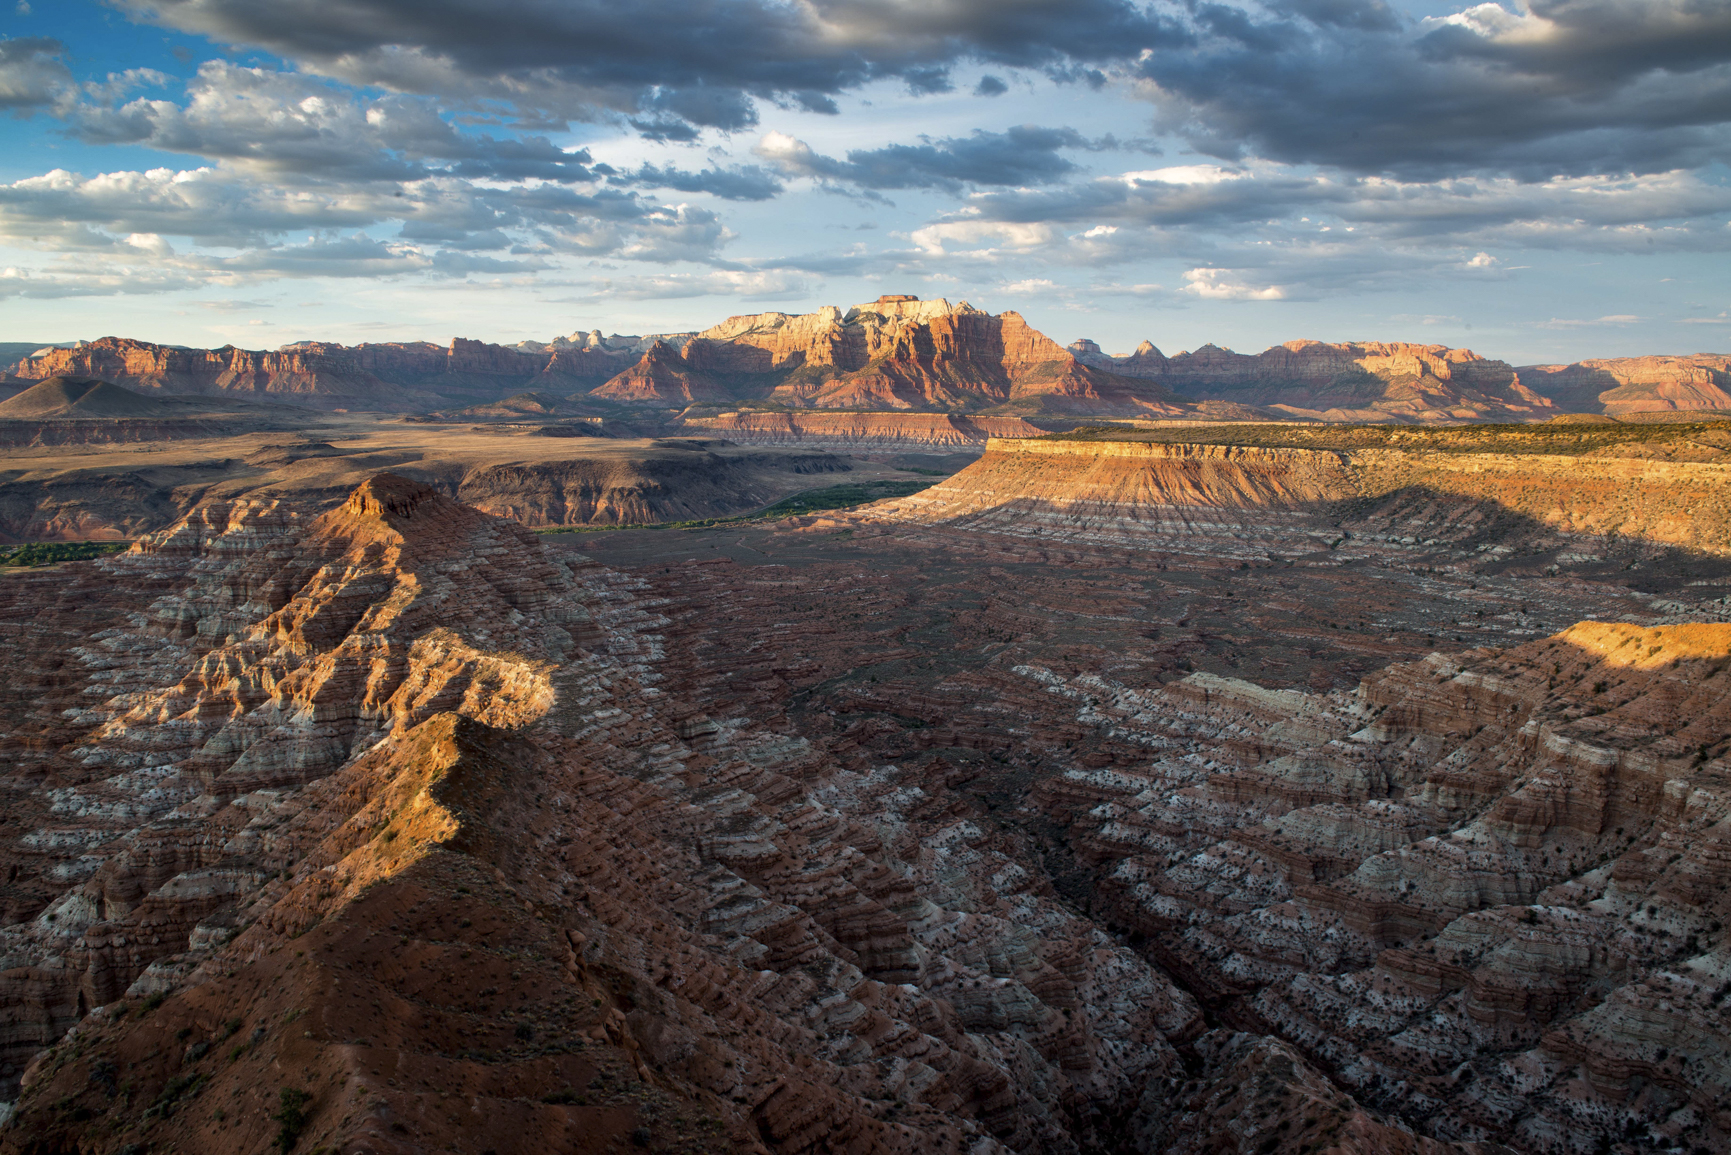 Mesa and Canyon Near Zion During Golden Hour